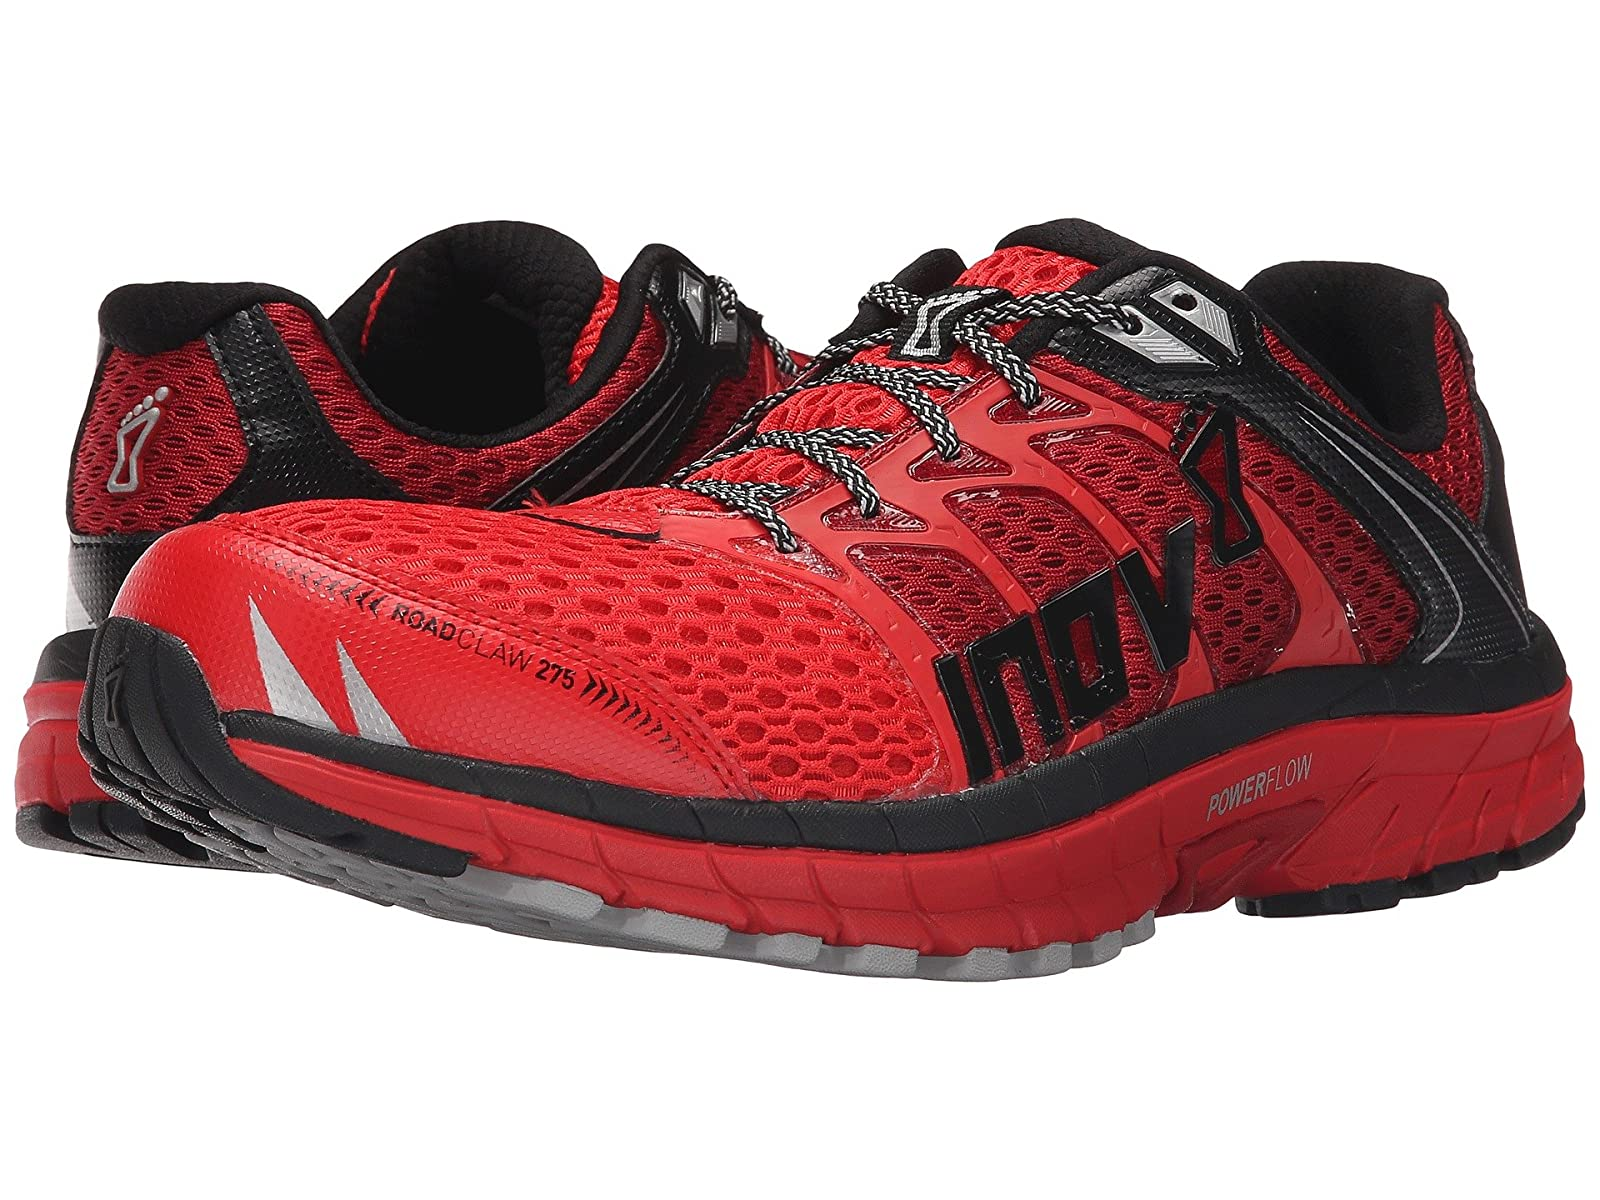 inov-8 Road Claw 275Cheap and distinctive eye-catching shoes